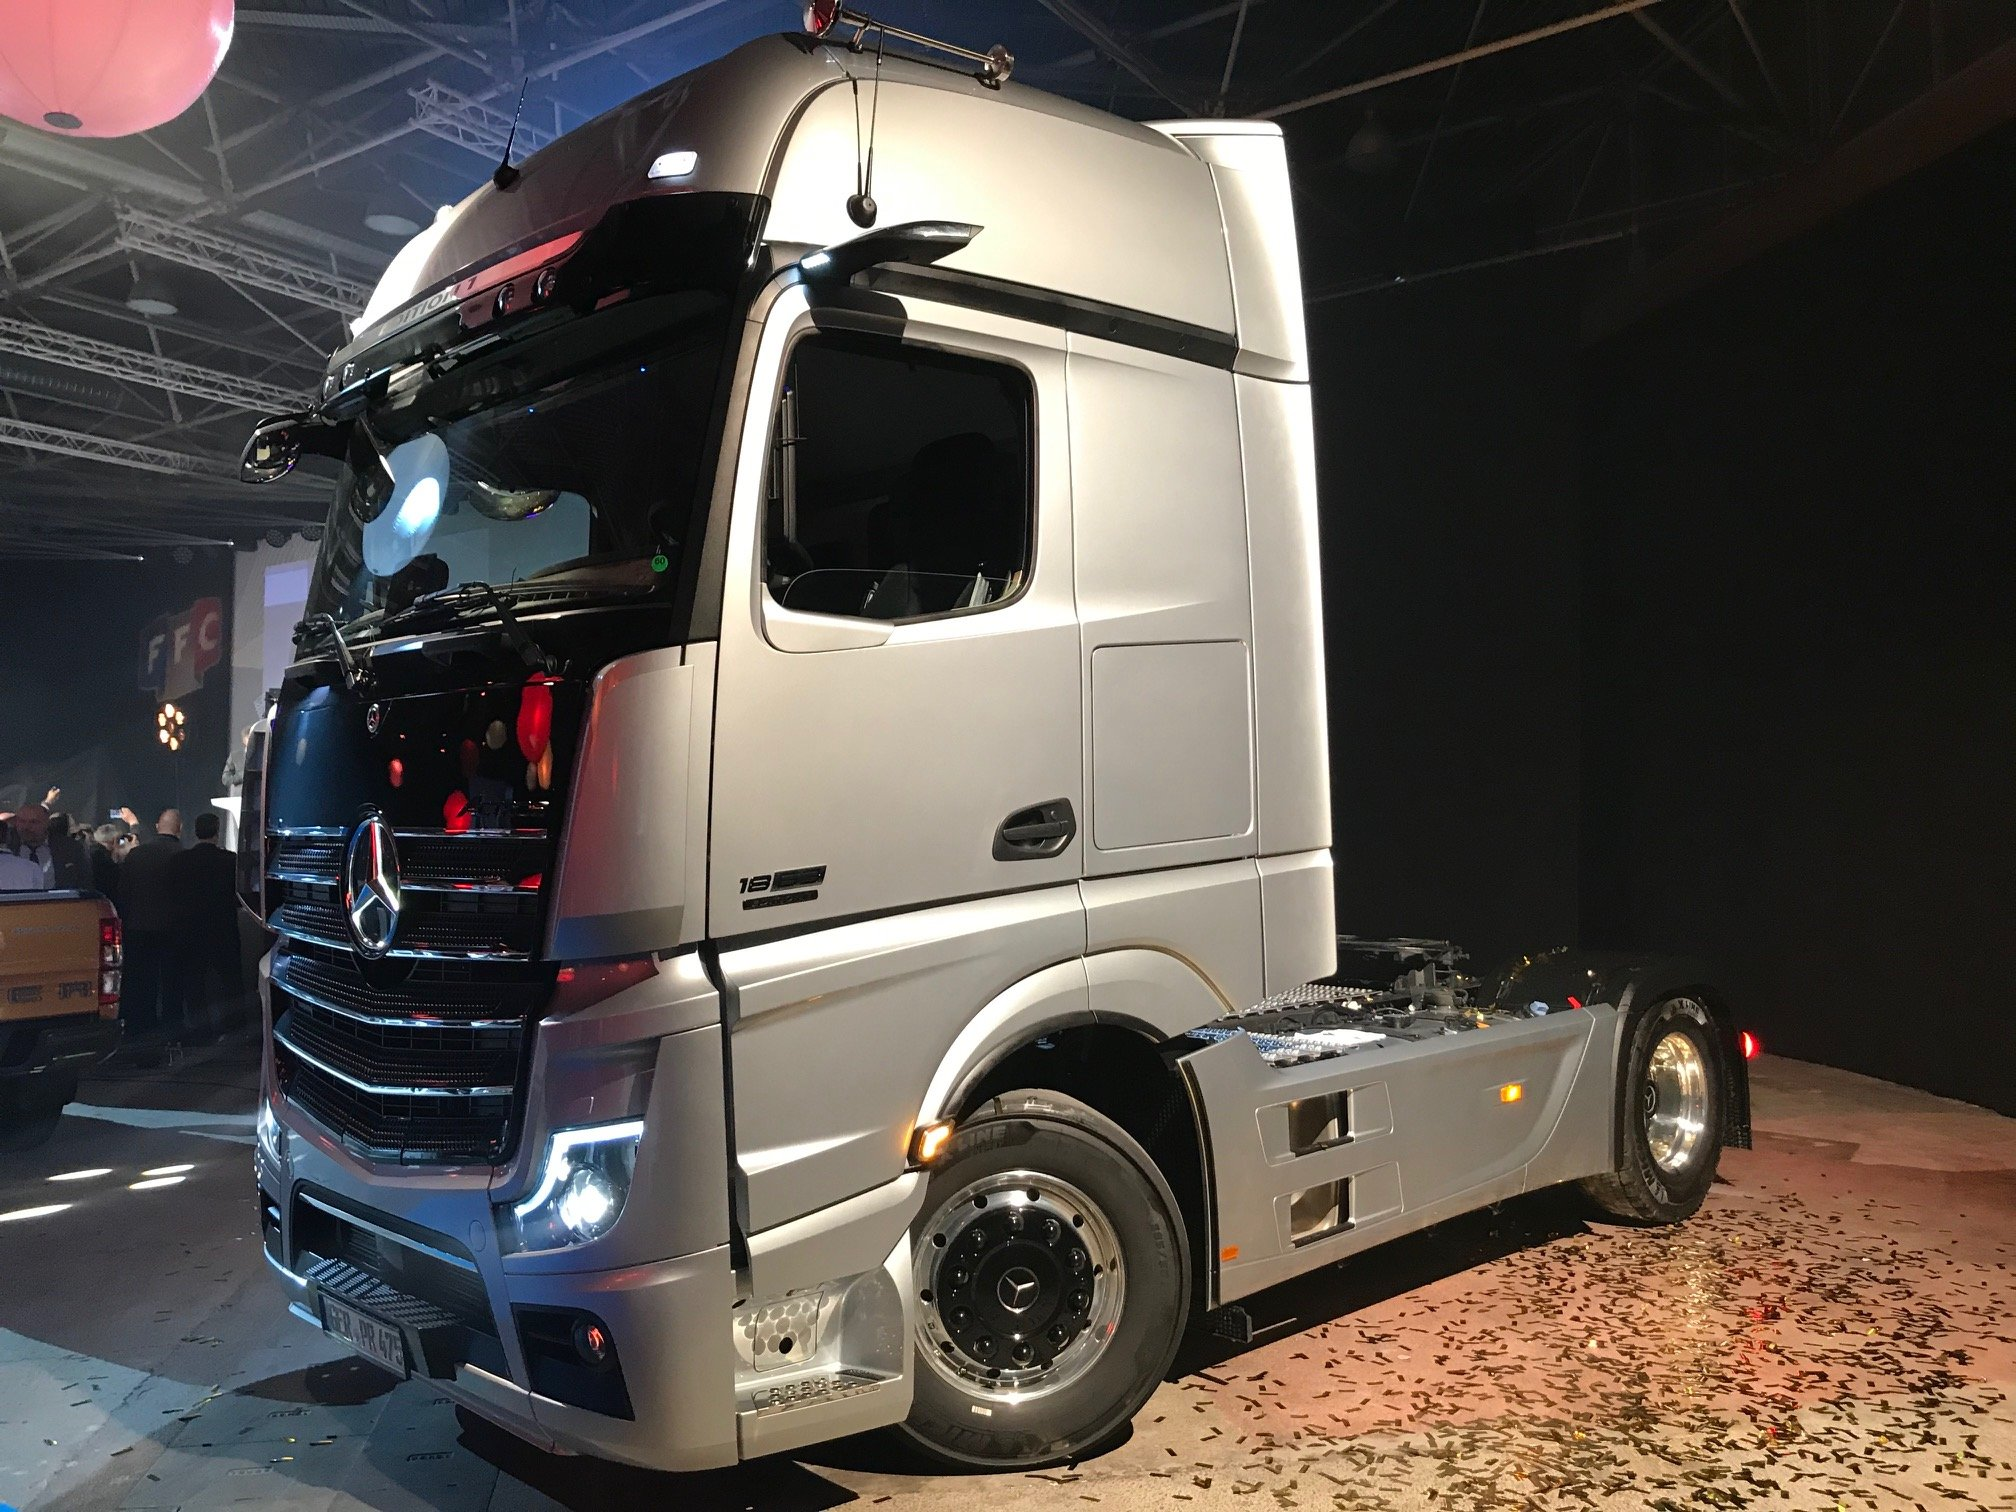 Mercedes-Benz Actros wins International Truck of the Year ...